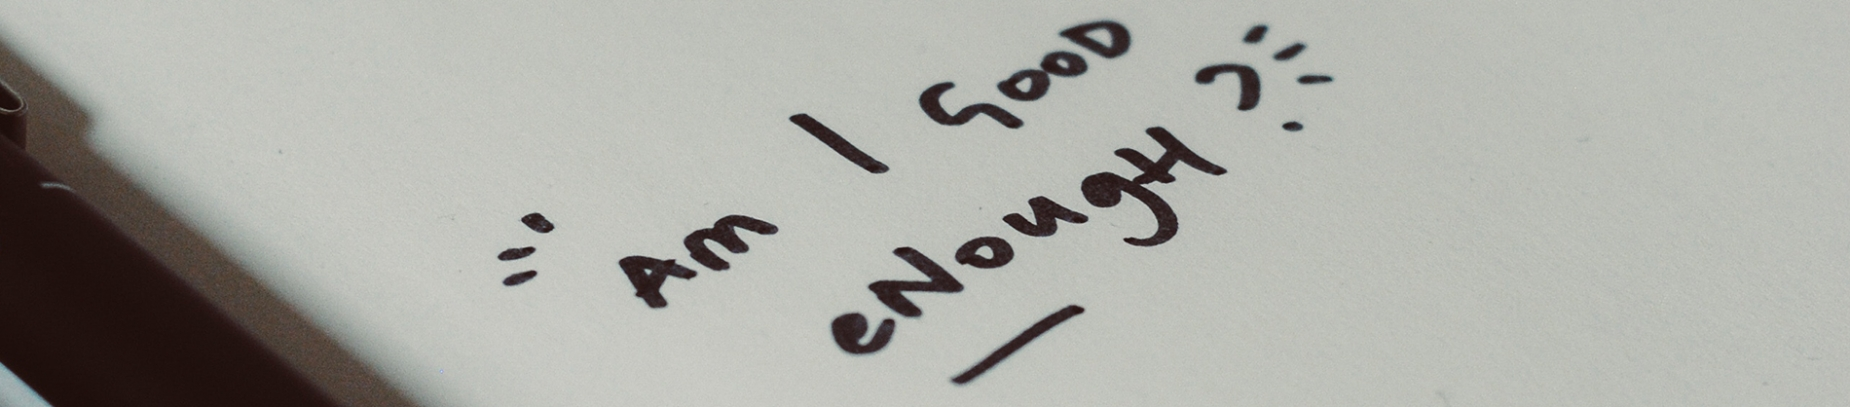 "A notebook with 'Am i good enough"" written on a page"